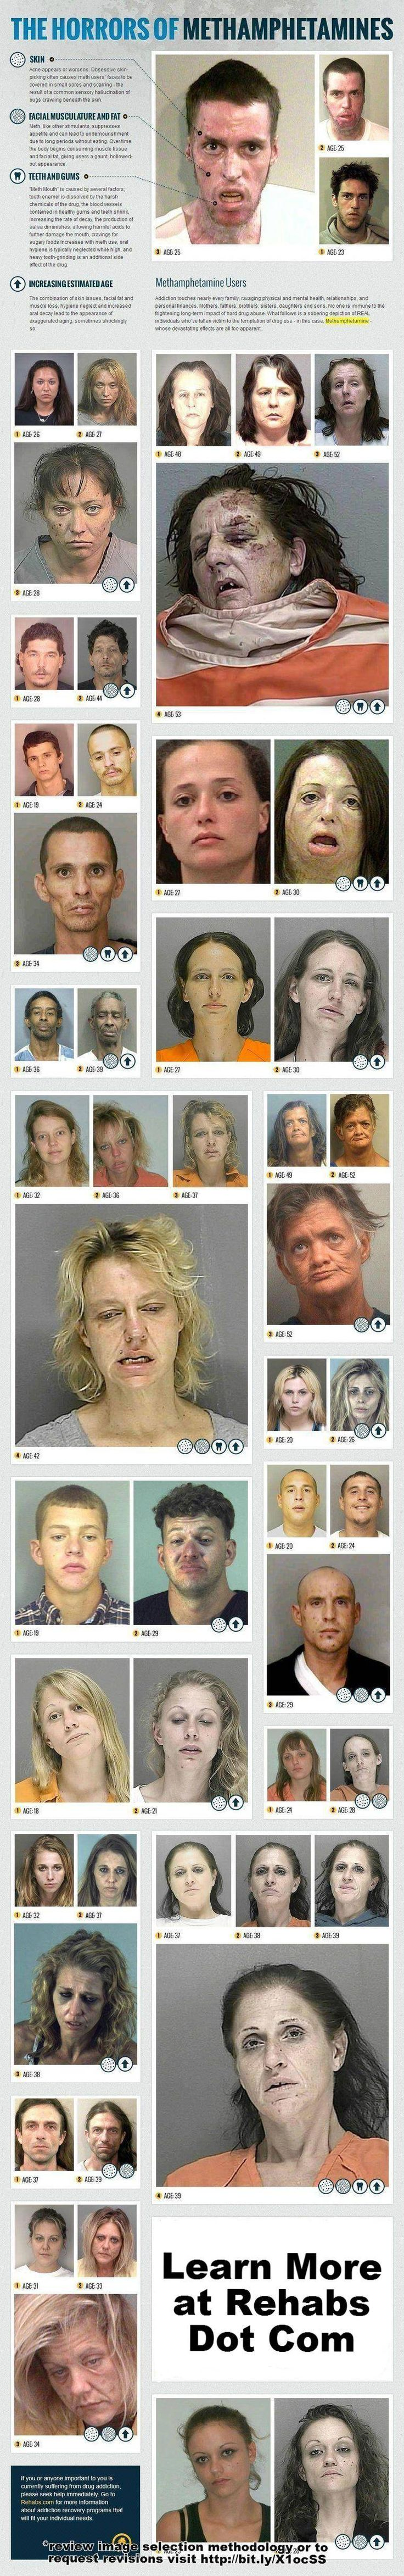 Horrors Of Methamphetamines By Rehabs.com Shows Faces Ravaged by addiction. December 6, 2012. Pinned by the You Are Linked to Resources for Families of People with Substance Use  Disorder cell phone / tablet app on February 26, 2014;      Android - https://play.google.com/store/apps/details?id=com.thousandcodes.urlinkedlite;                    iPhone - https://itunes.apple.com/us/app/you-are-linked-to-resources/id743245884?mt=8